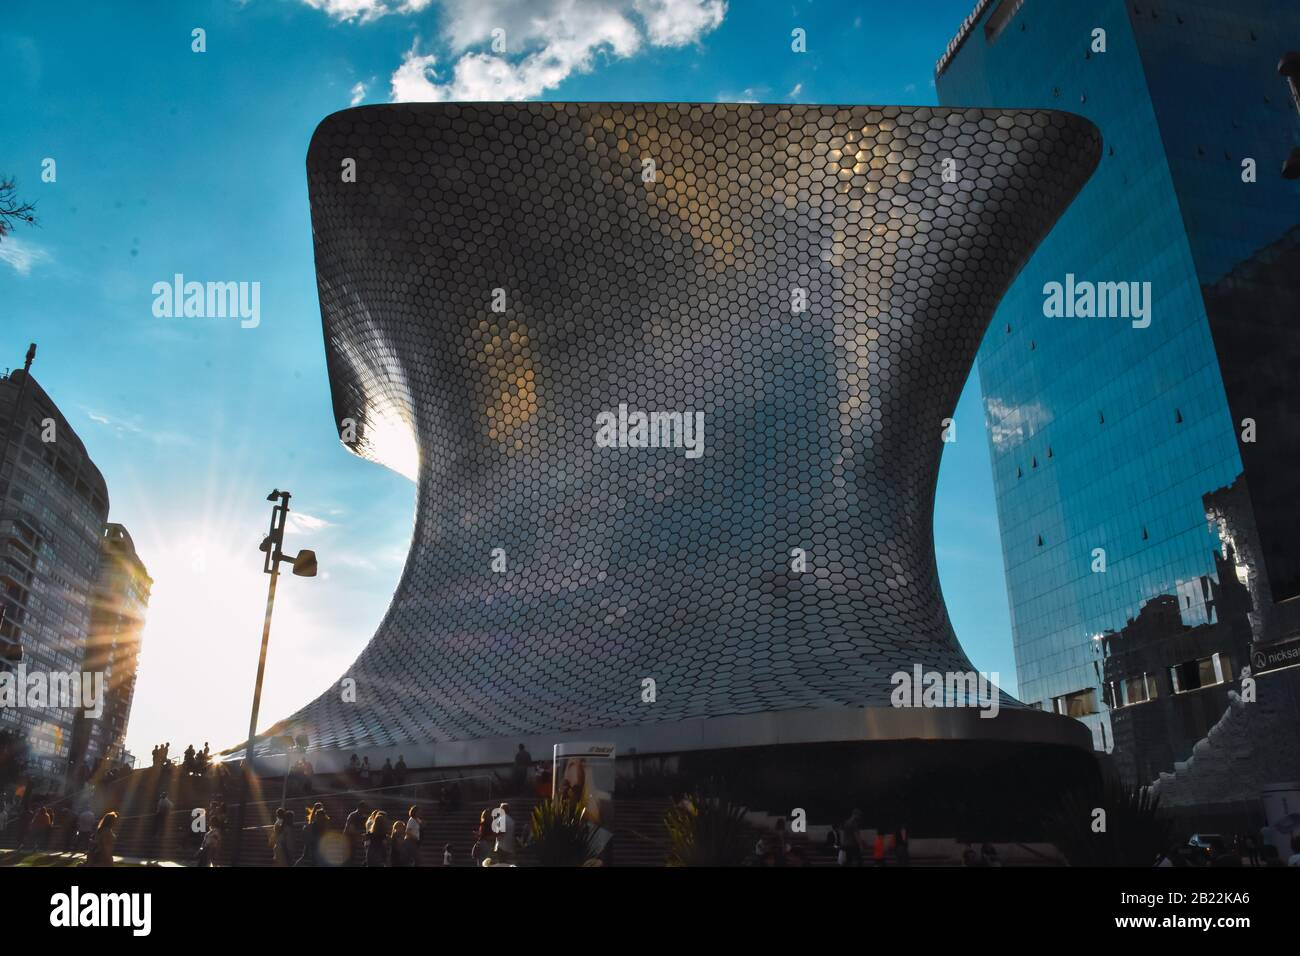 Mexico City, Mexico; October 7 2019:The futuristic architecture of the soumaya museum in Mexico Stock Photo